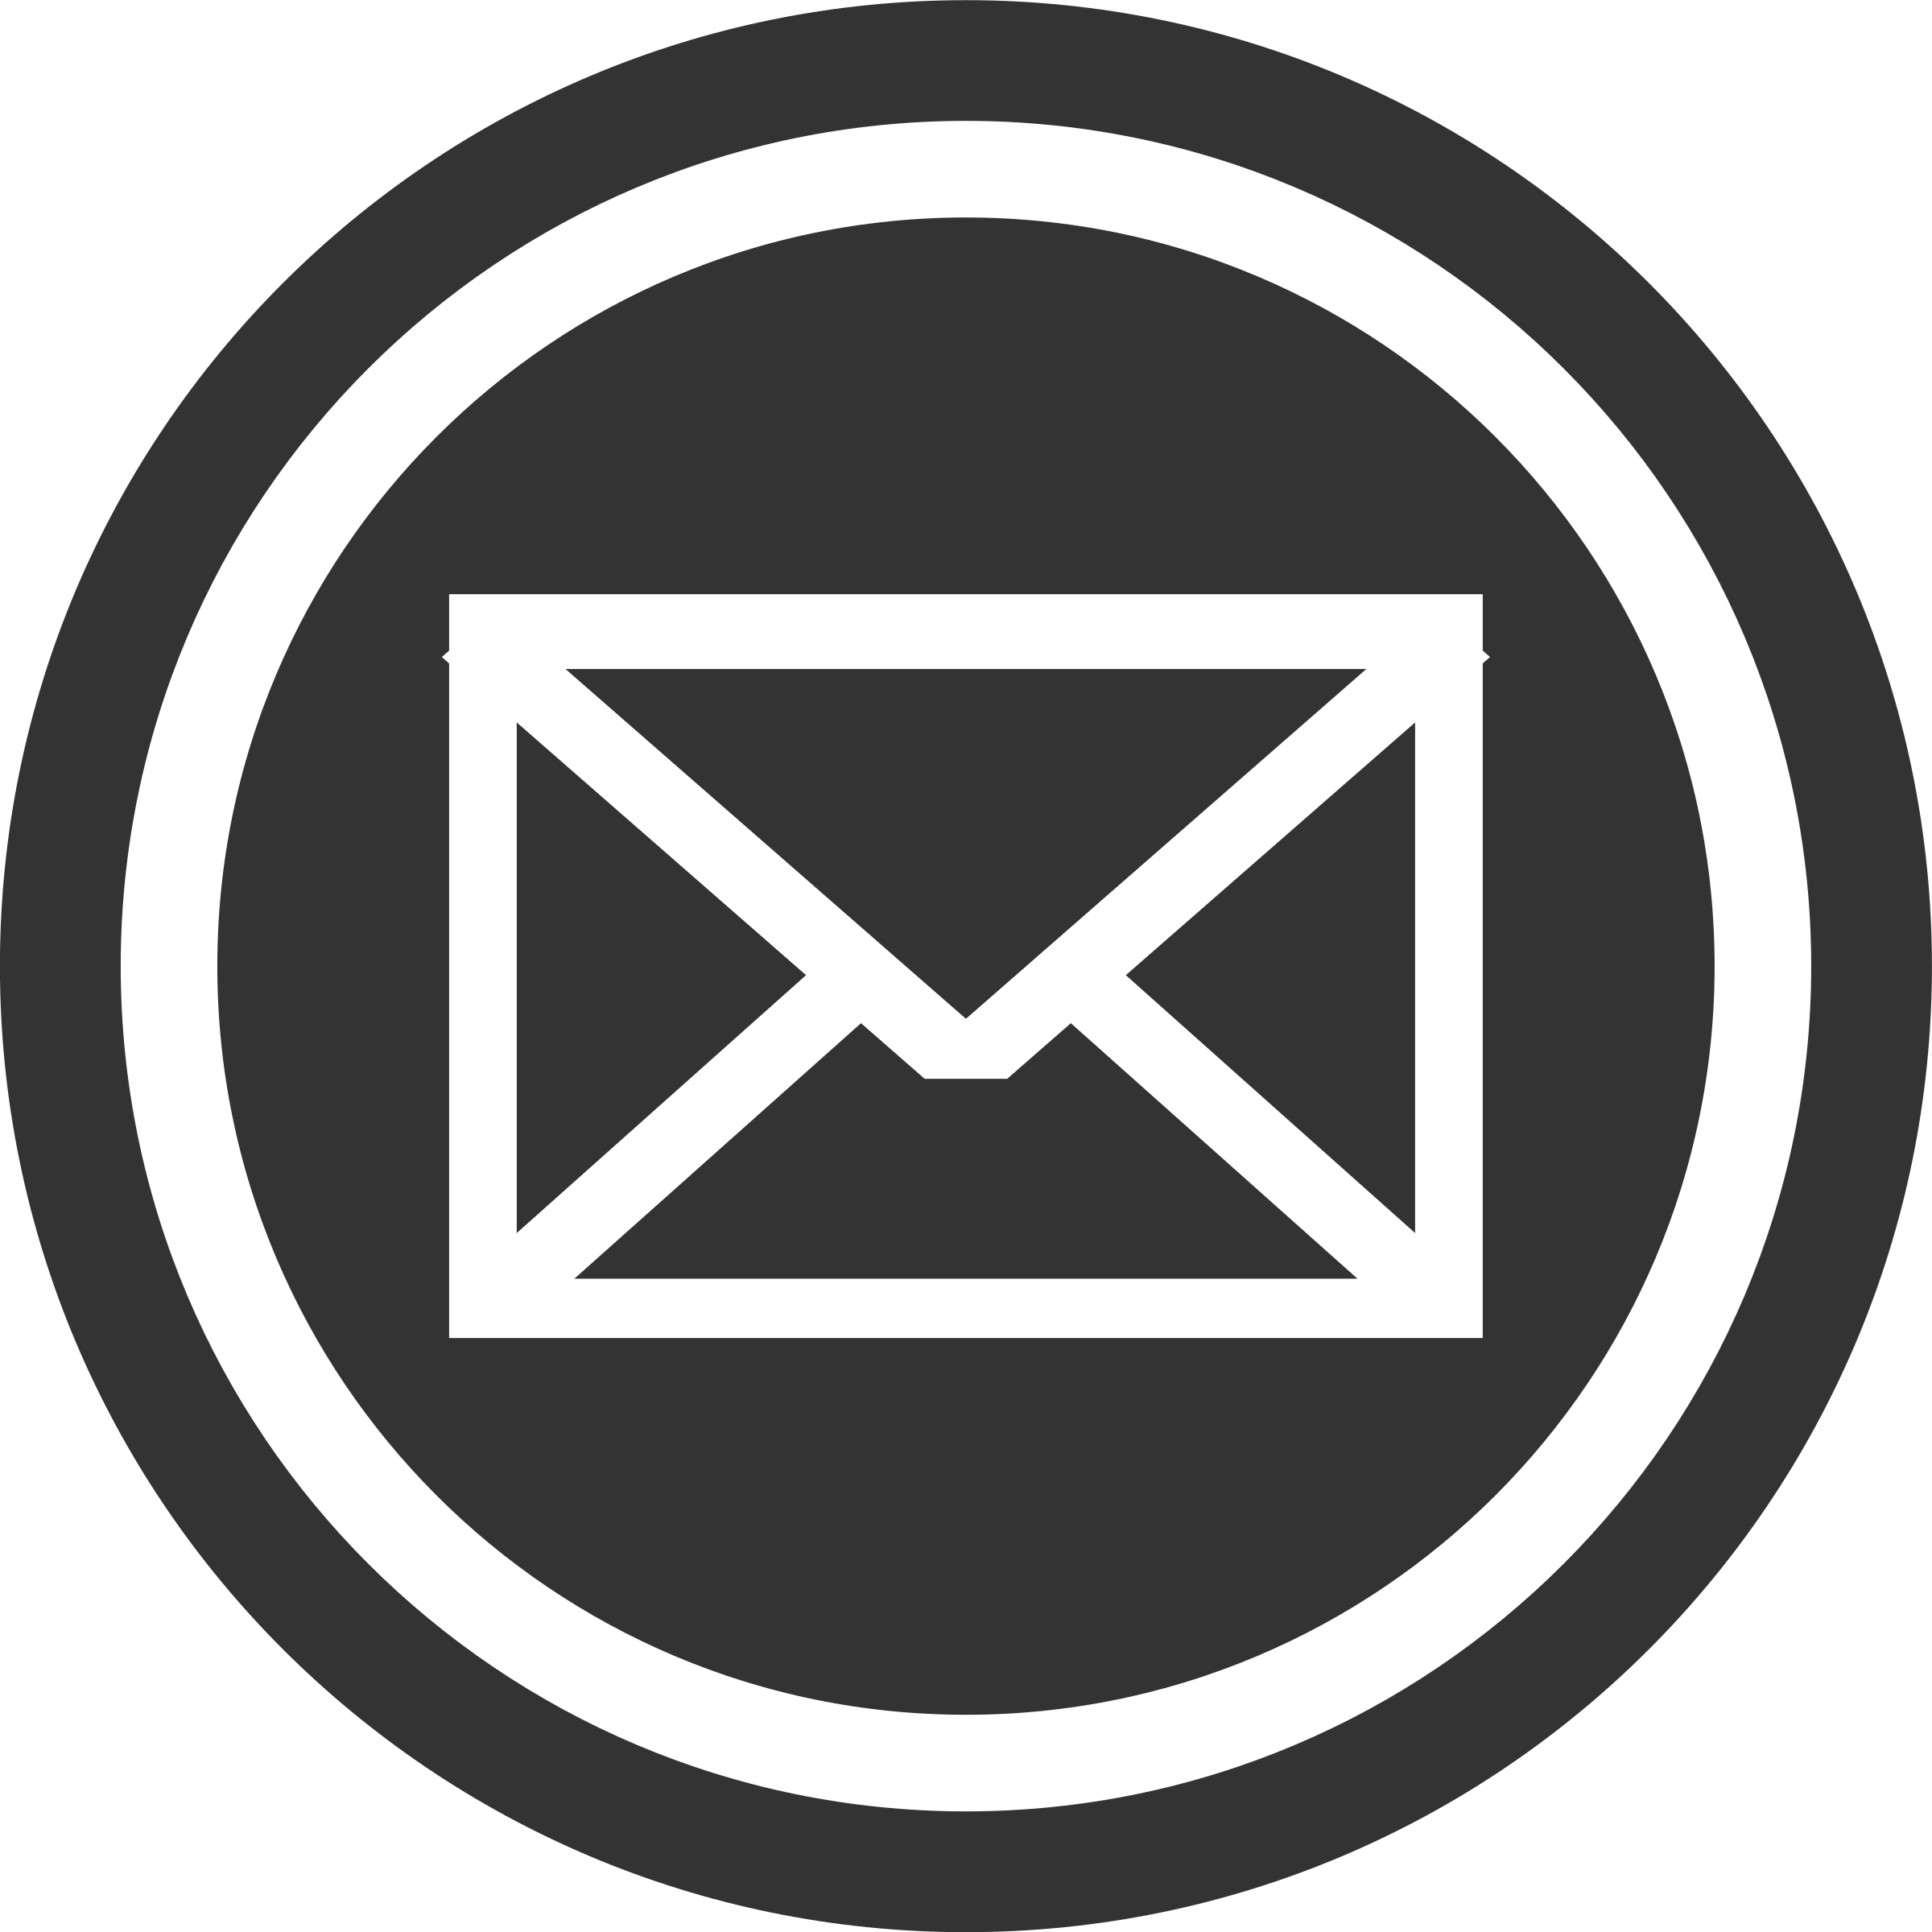 email symbol clipart 20 free cliparts